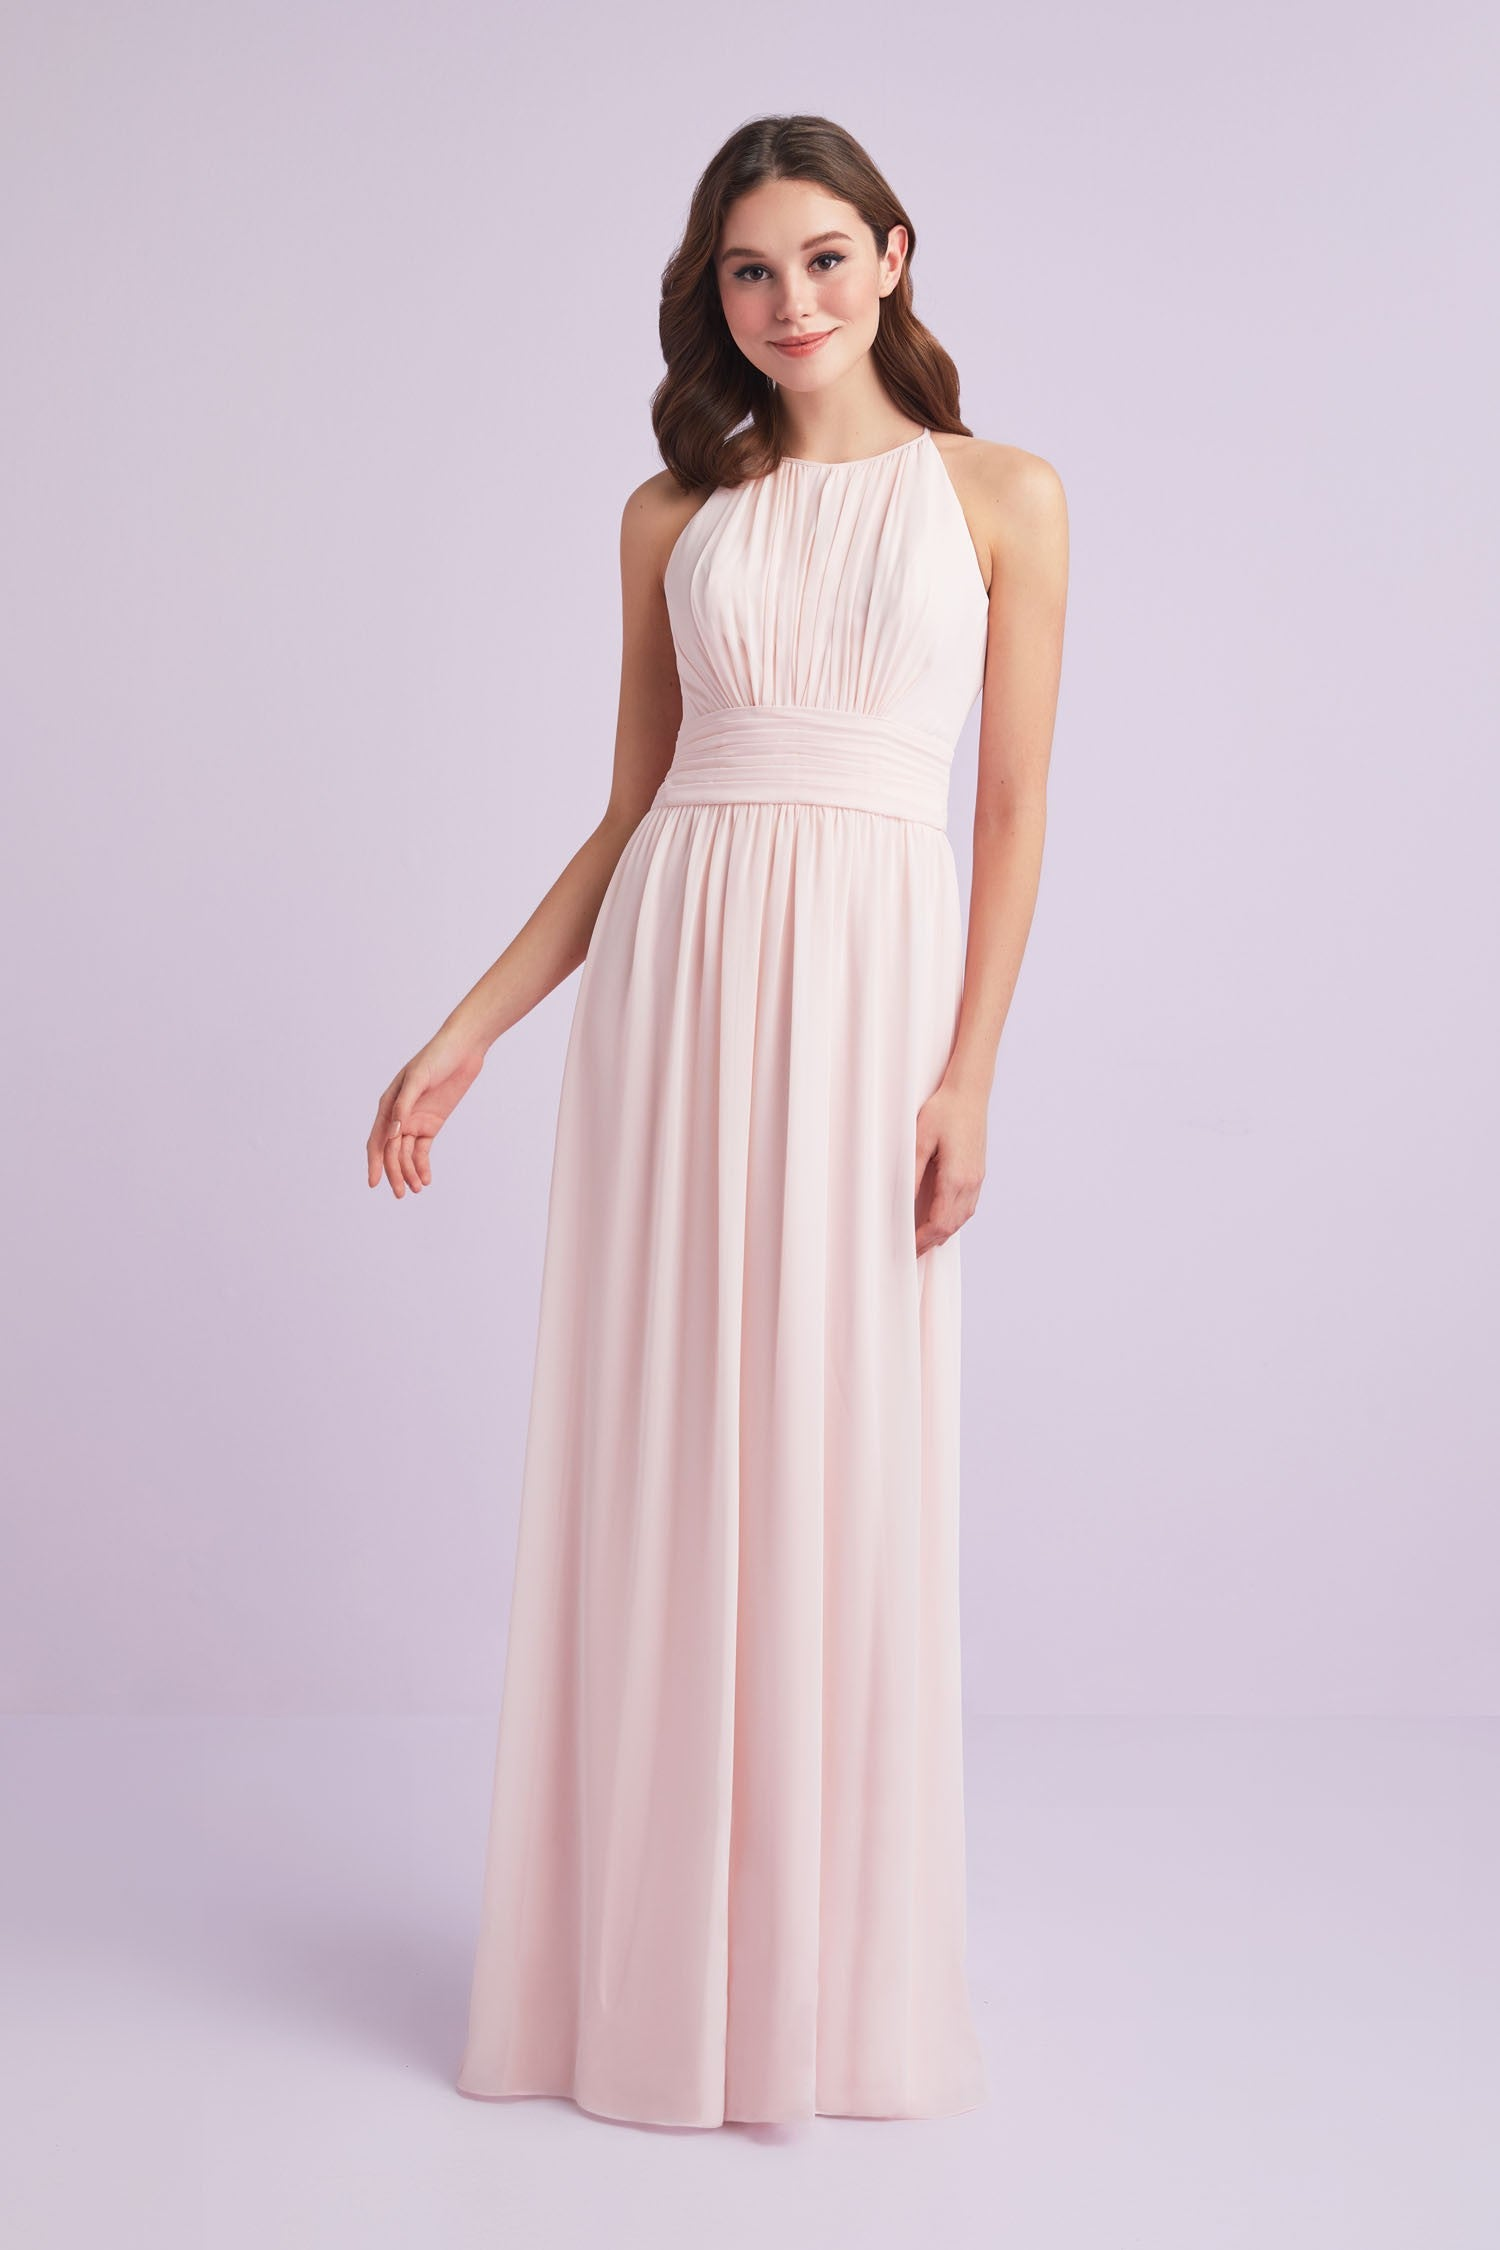 7352b3bccd31 Affordable Bridesmaids Dresses Online | Oleg Cassini Store